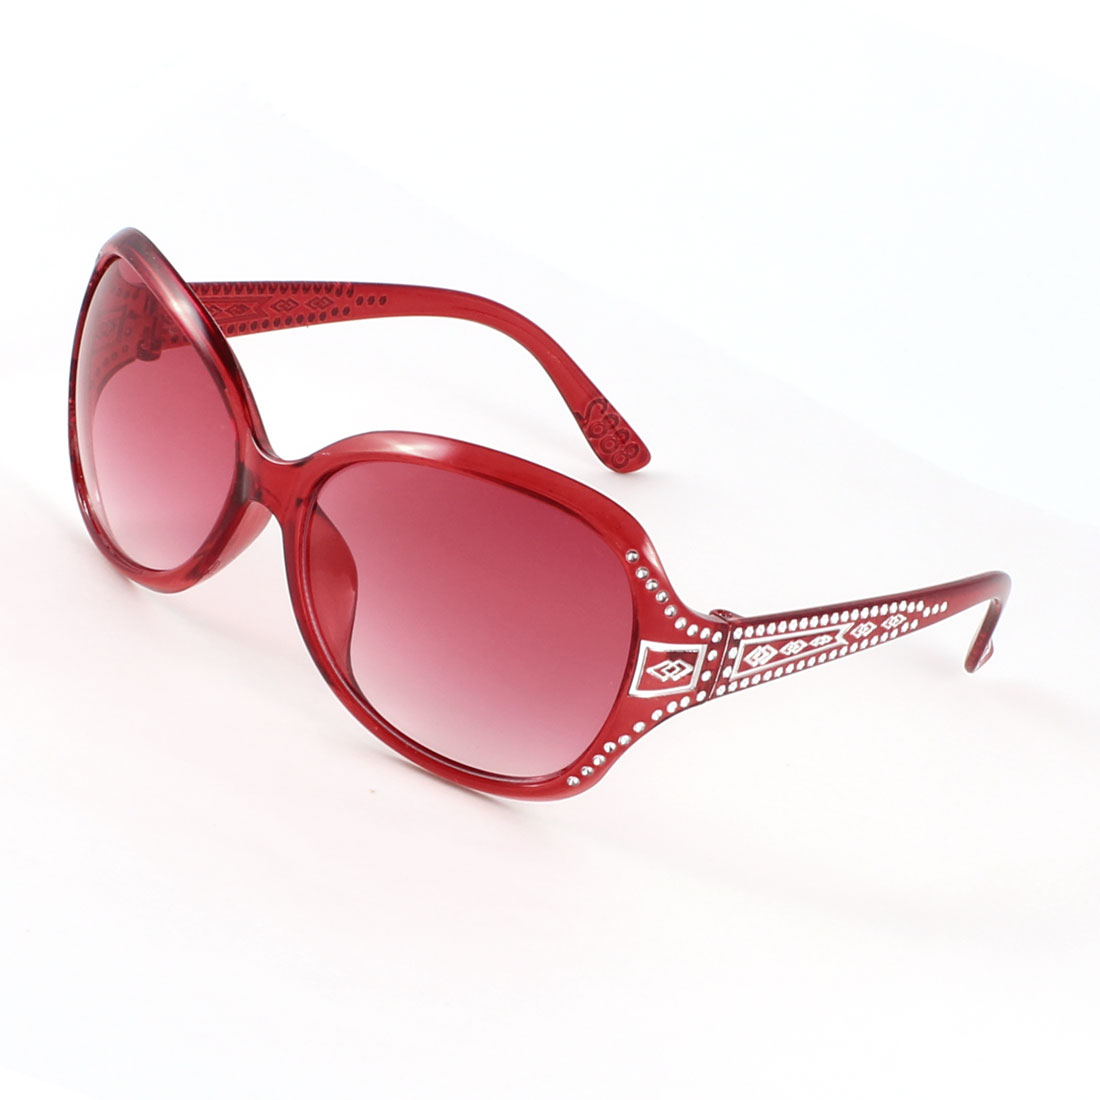 Lady Outdoor Burgundy Arm Full Frame Tinted Lens Rhinestone Inlaid Sunglasses